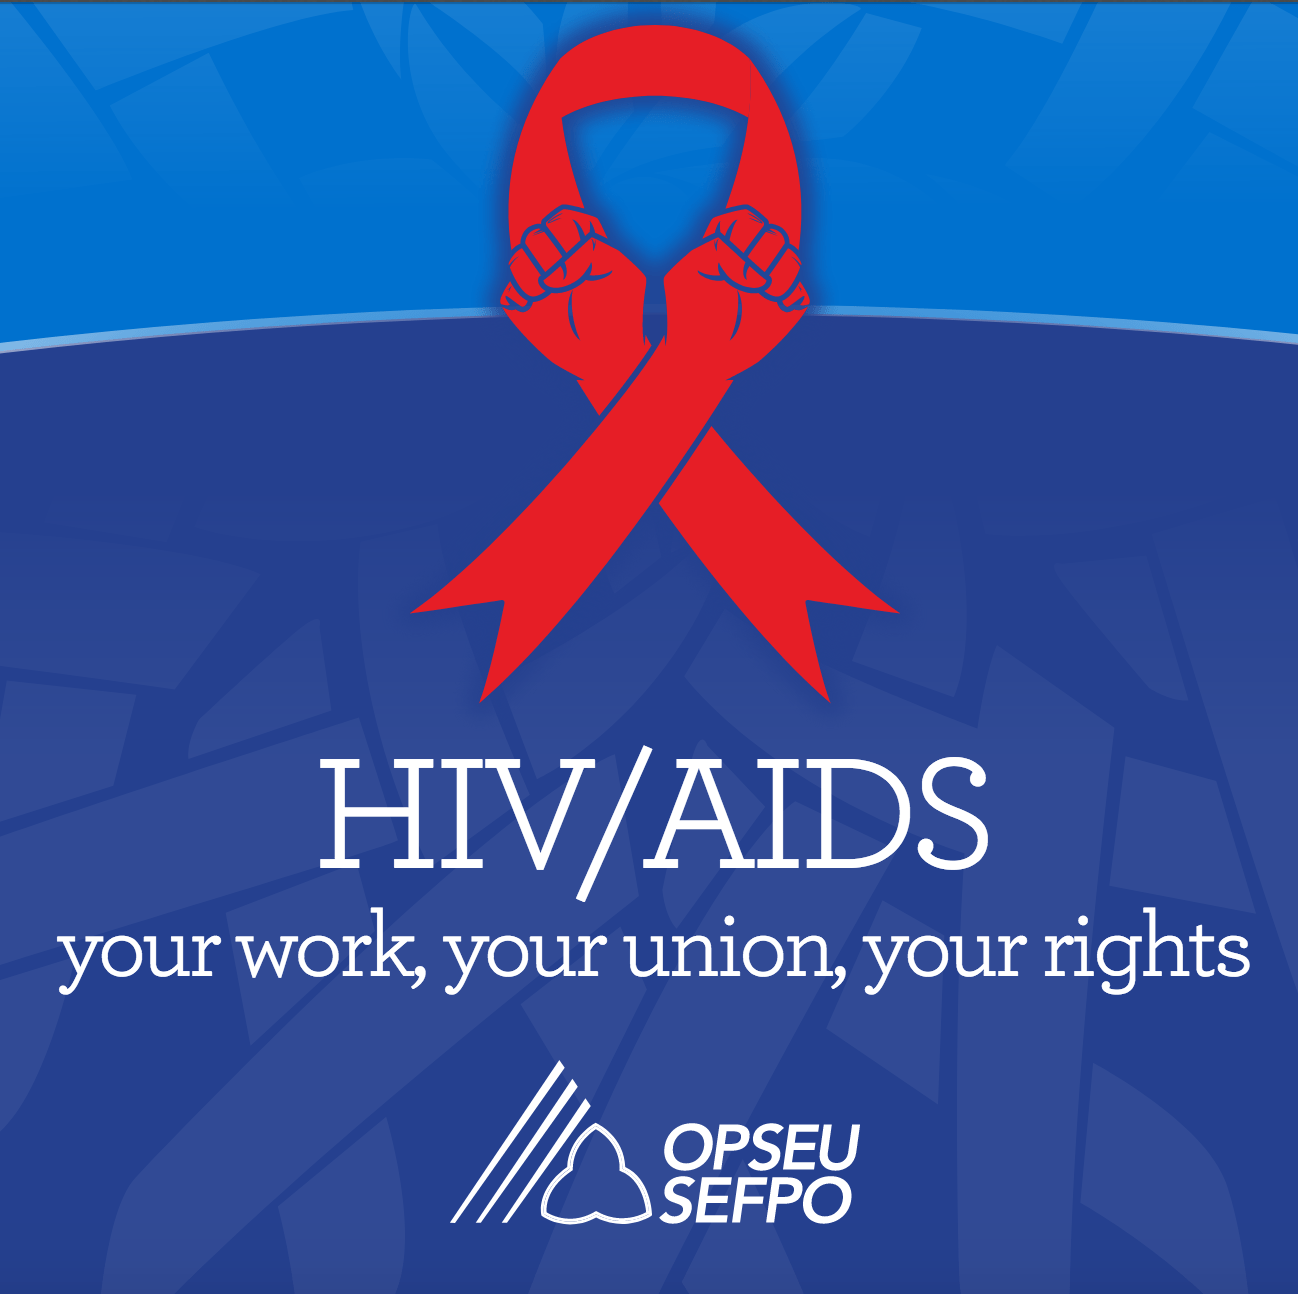 HIV/Aids - your work, your union, your rights. OPSEU